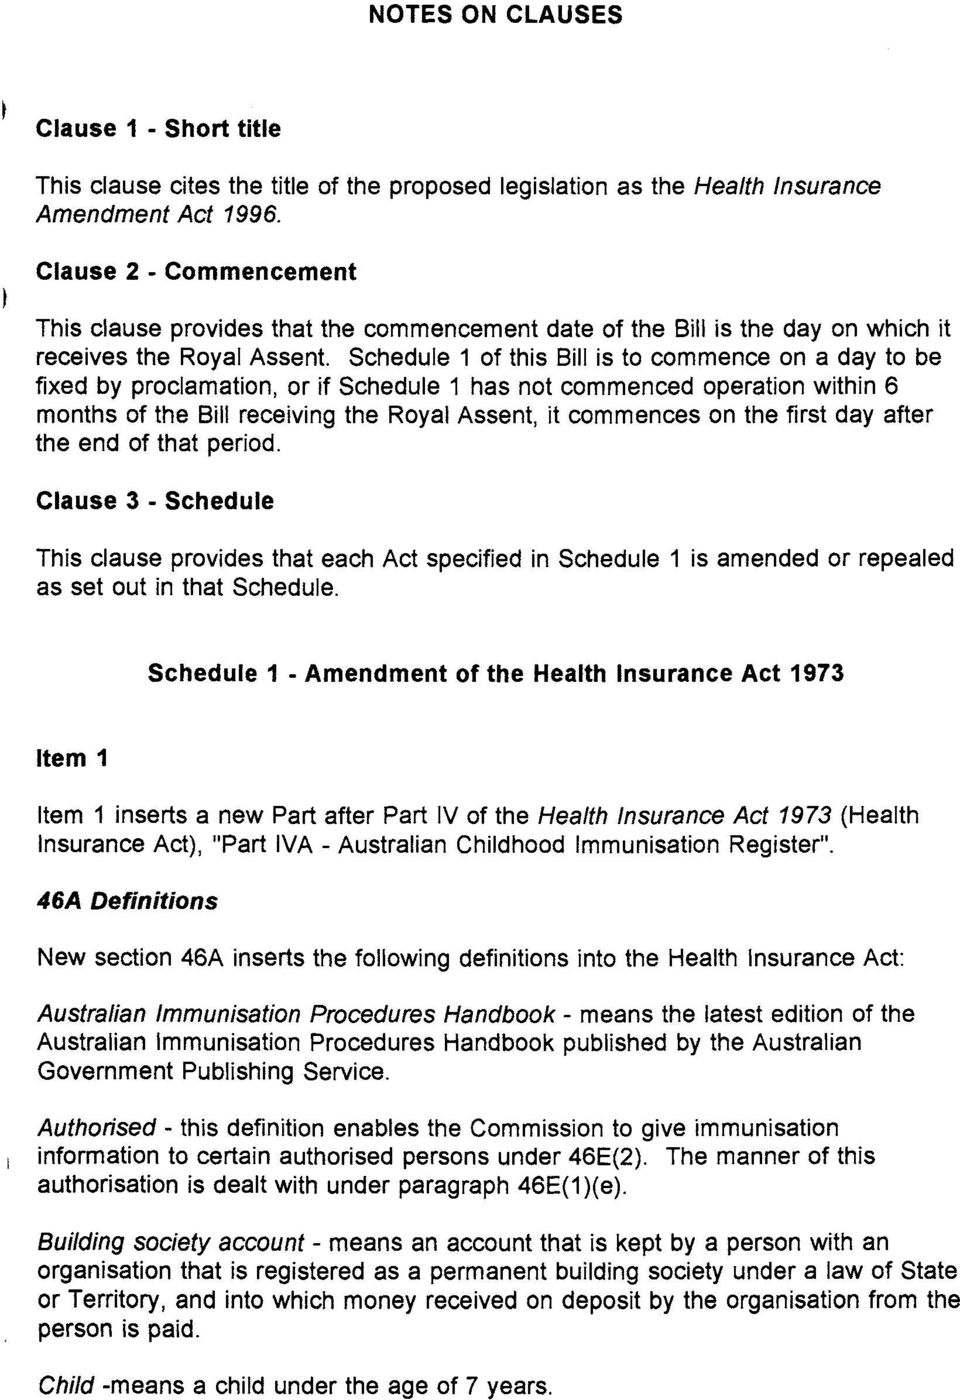 Schedule 1 of this Bill is to commence on a day to be fixed by proclamation, or if Schedule 1 has not commenced operation within 6 months of the Bill receiving the Royal Assent, it commences on the